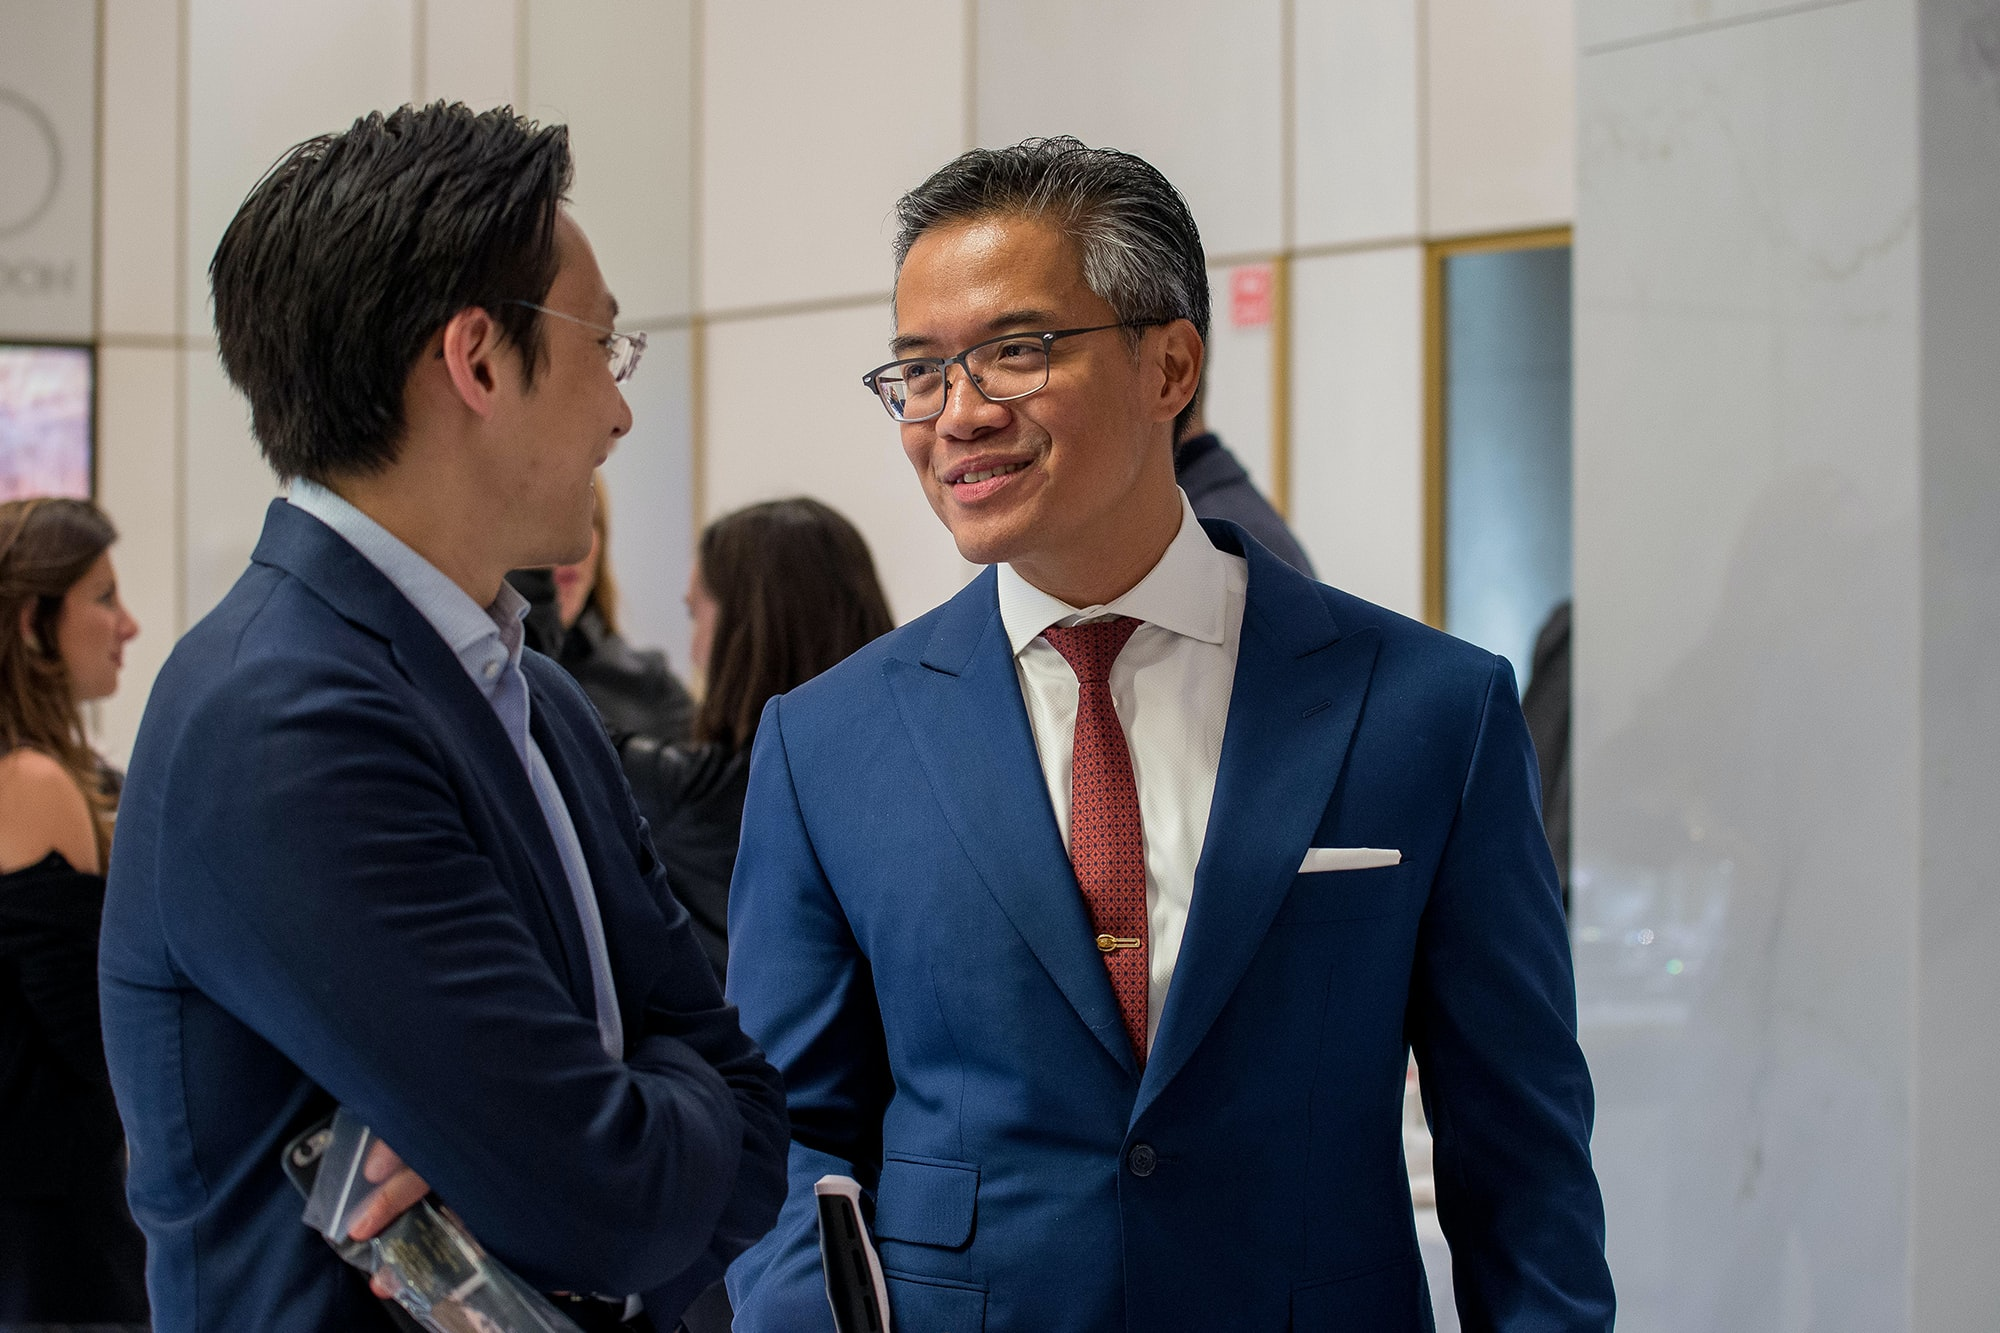 Photo Report: HODINKEE Celebrates London Jewelers' New Store In New York City's Oculus Photo Report: HODINKEE Celebrates London Jewelers' New Store In New York City's Oculus 20161109 LondonJewelersxHodinkee 028